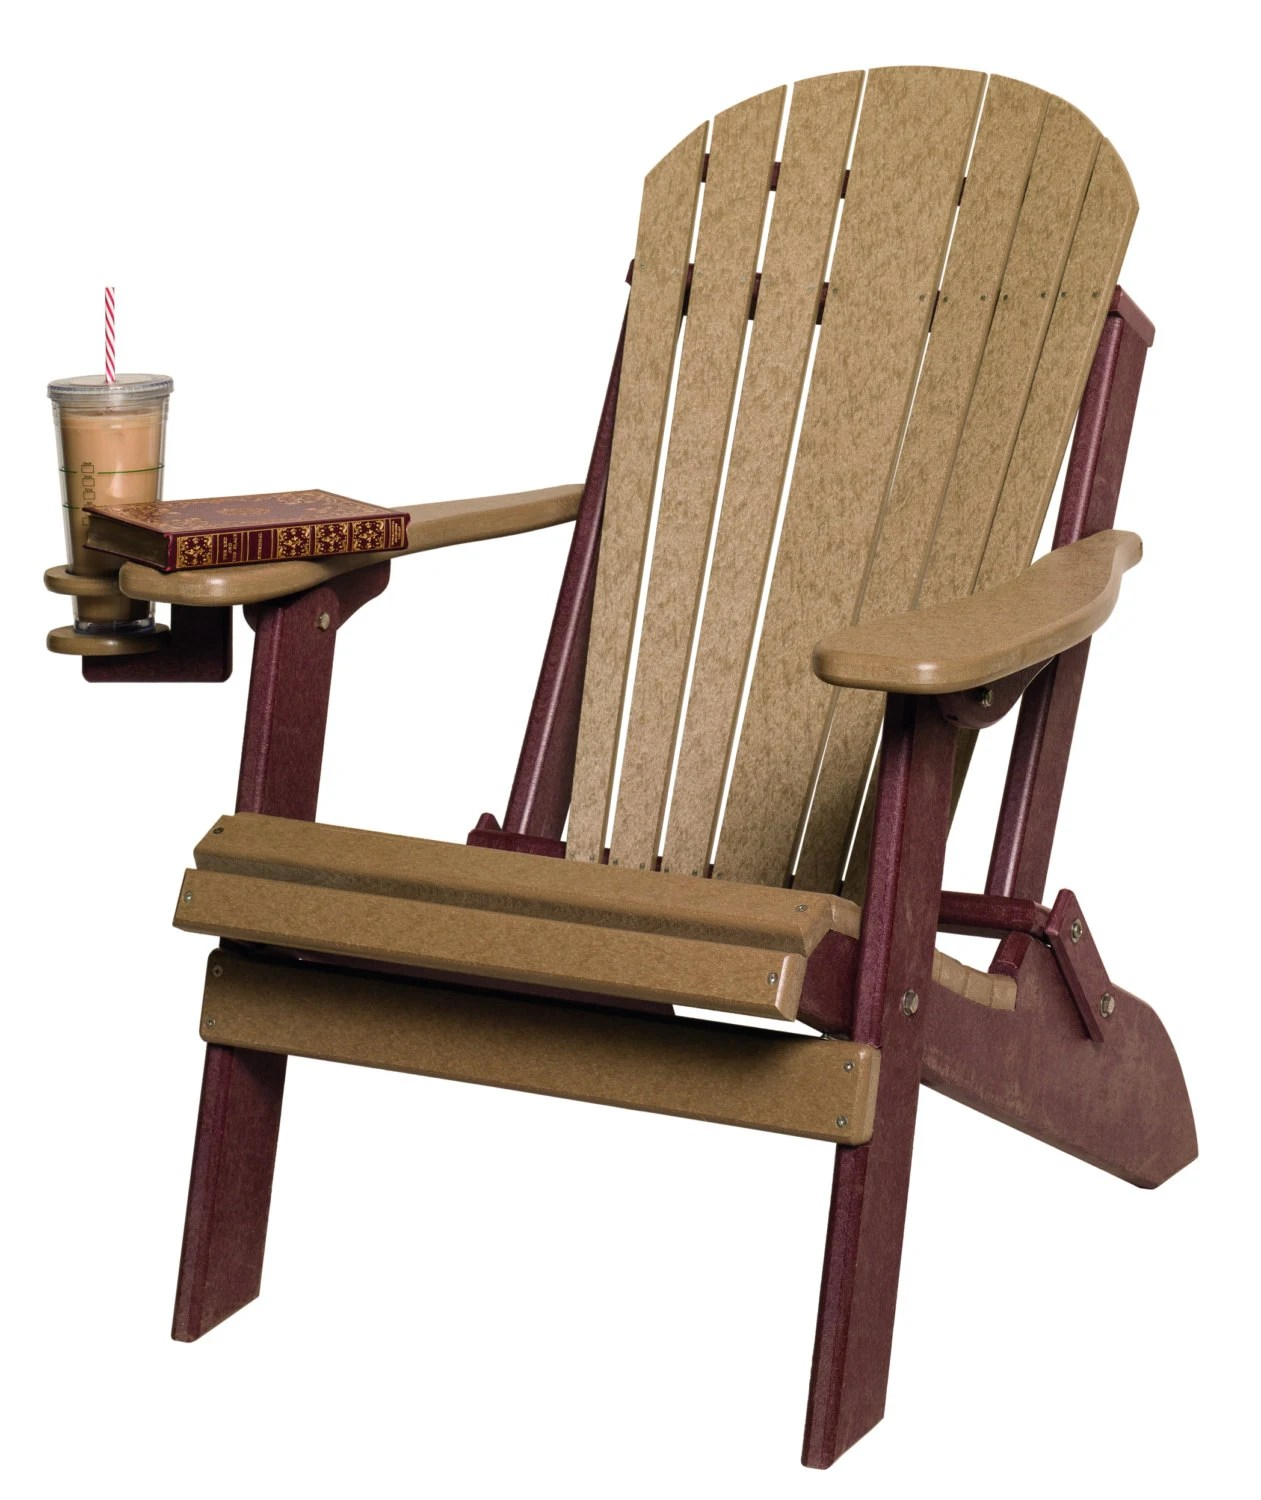 Foldable Adirondack Chair Recycled Poly Lumber Folding Adirondack Chair Black Brown